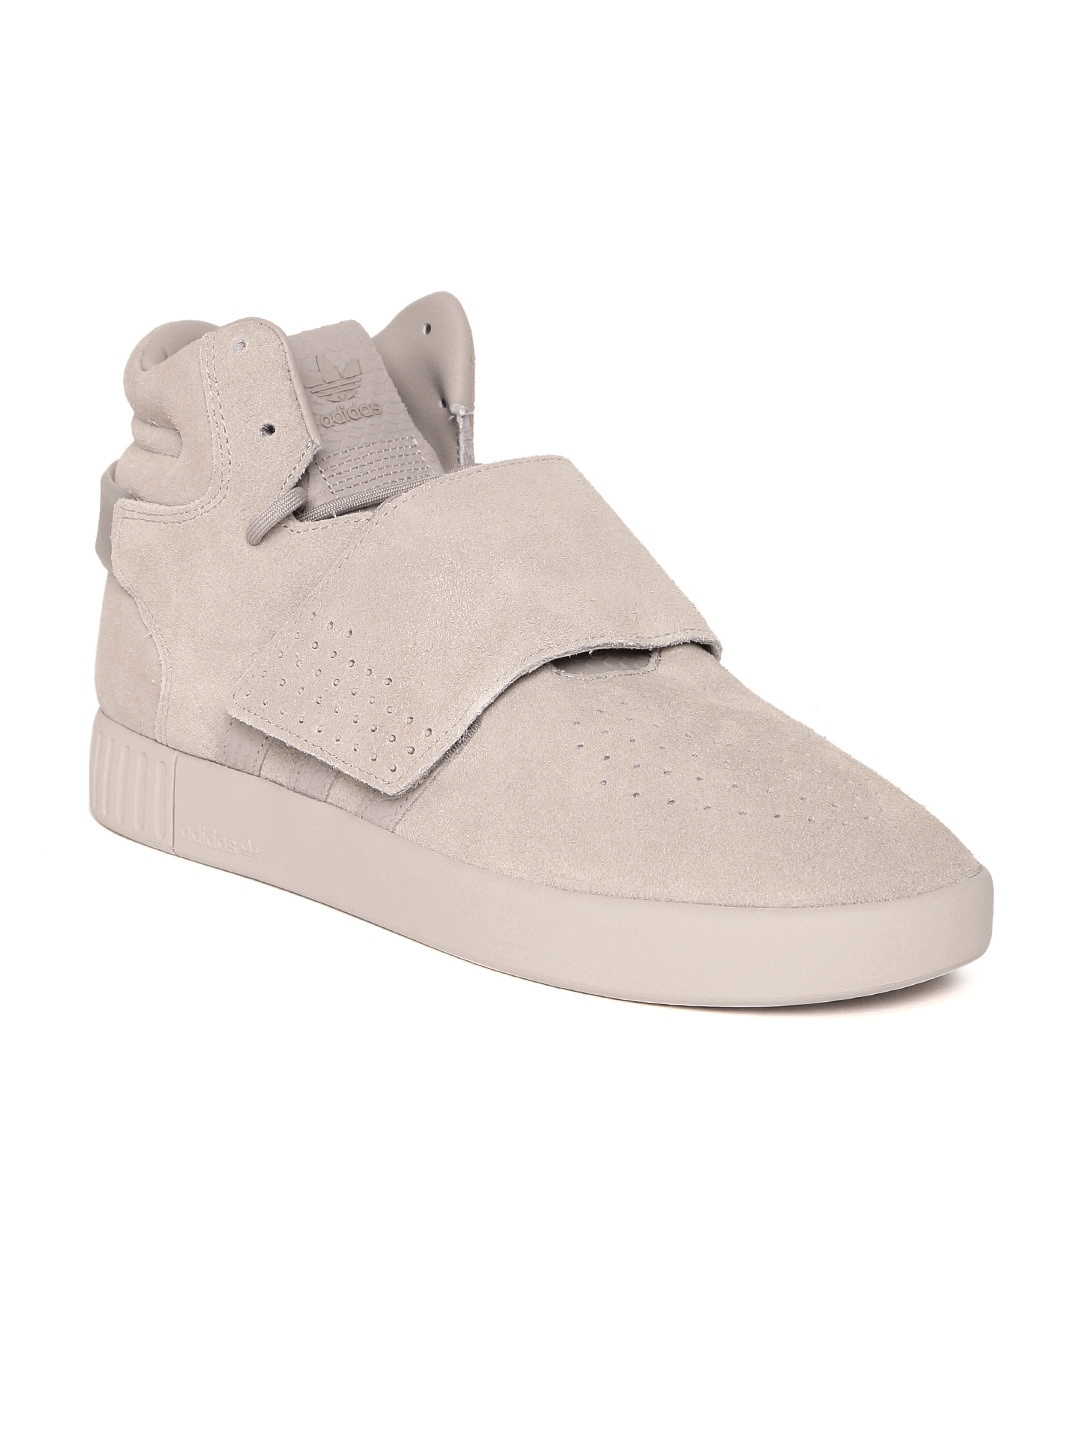 best website dfb5e e531d ADIDAS Originals Men Taupe TUBULAR INVADER STRAP Leather Mid-Top Sneakers